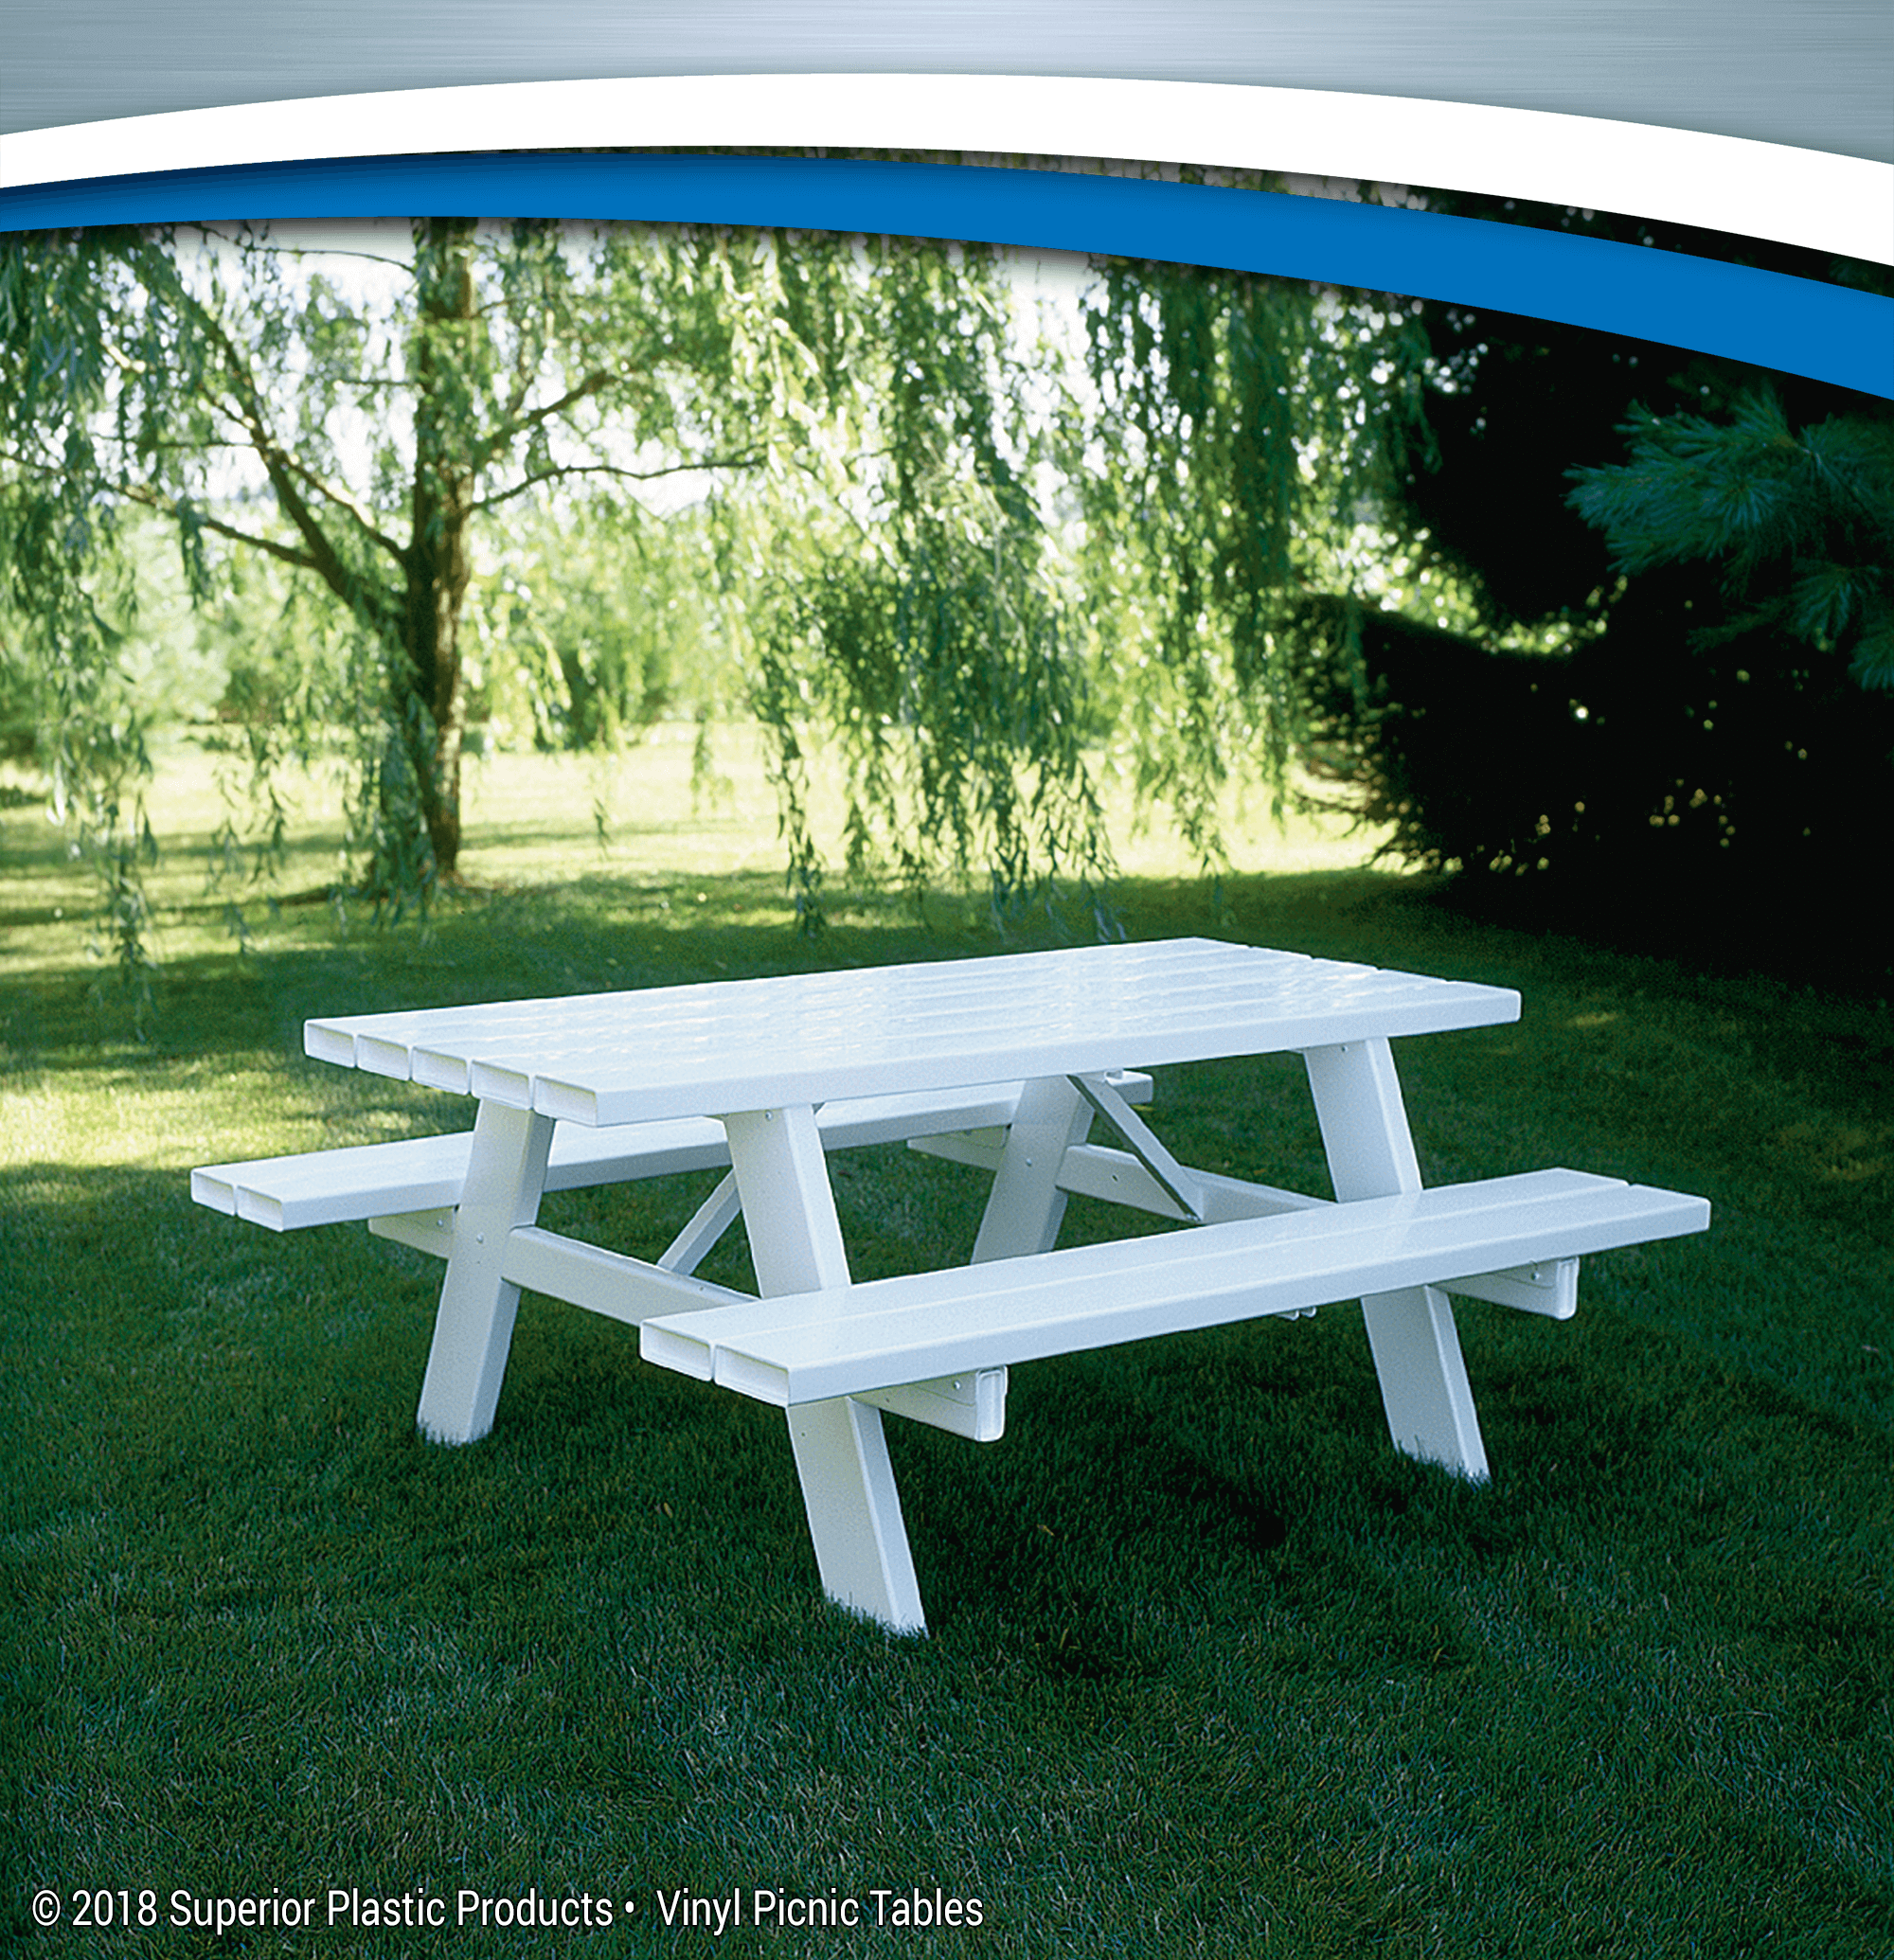 Vinyl Picnic Tables - Superior Plastic Products